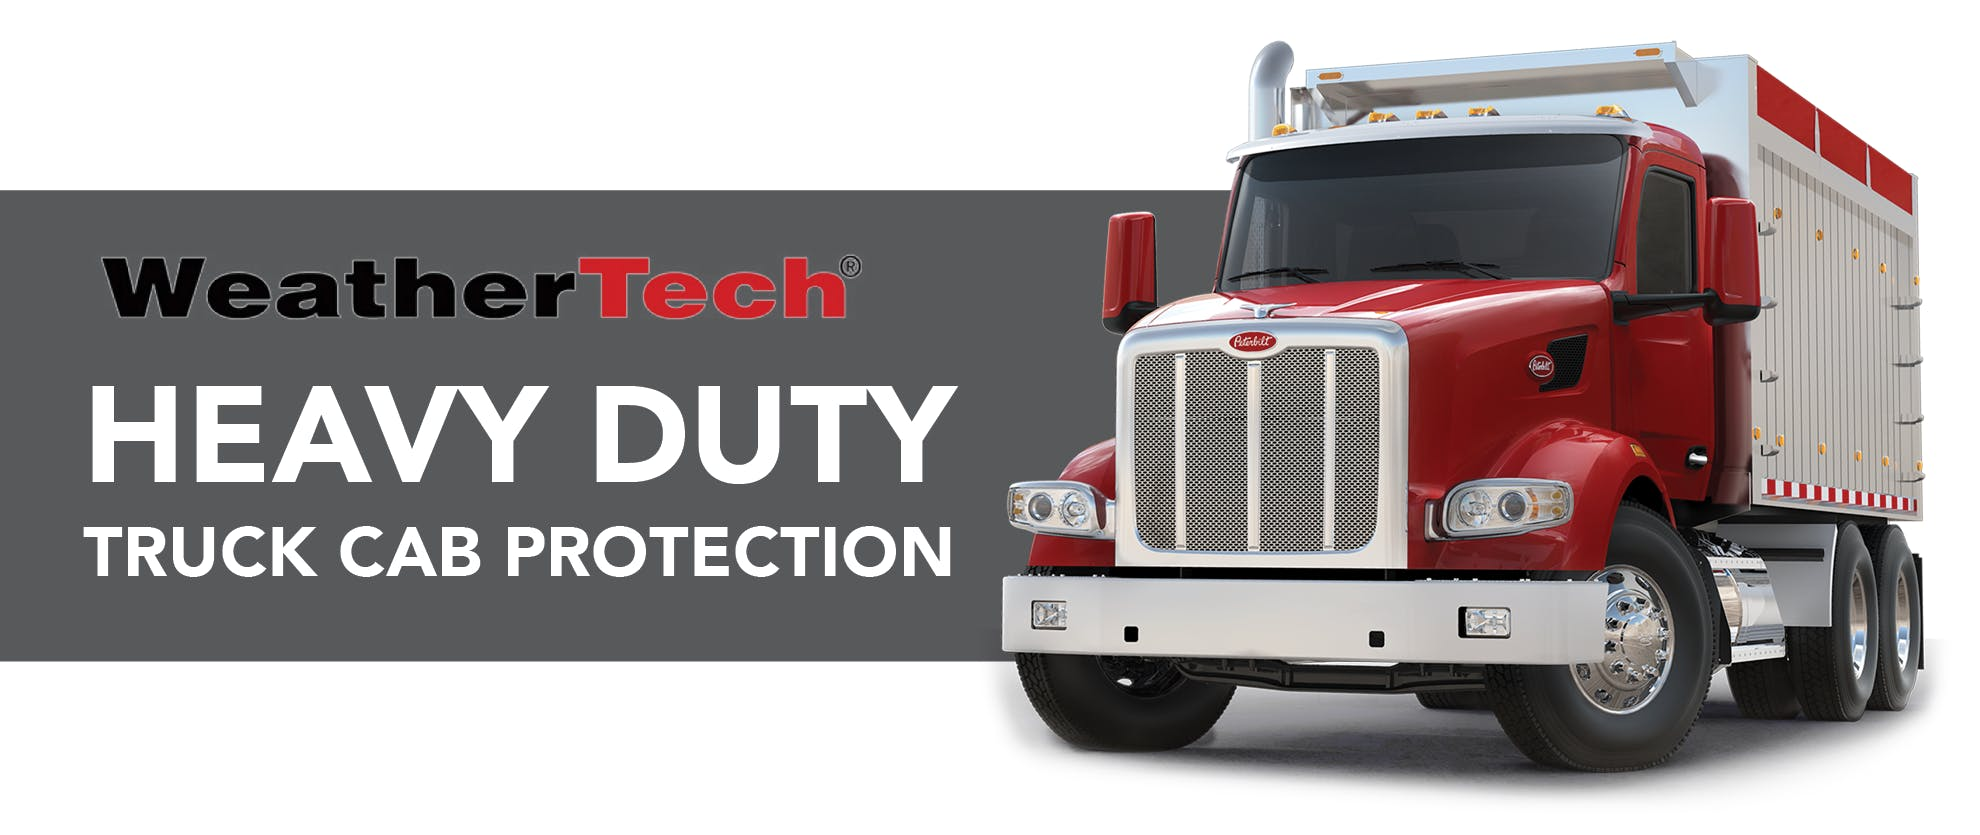 Heavy Duty Weather Tech NOW IN STOCK! title image